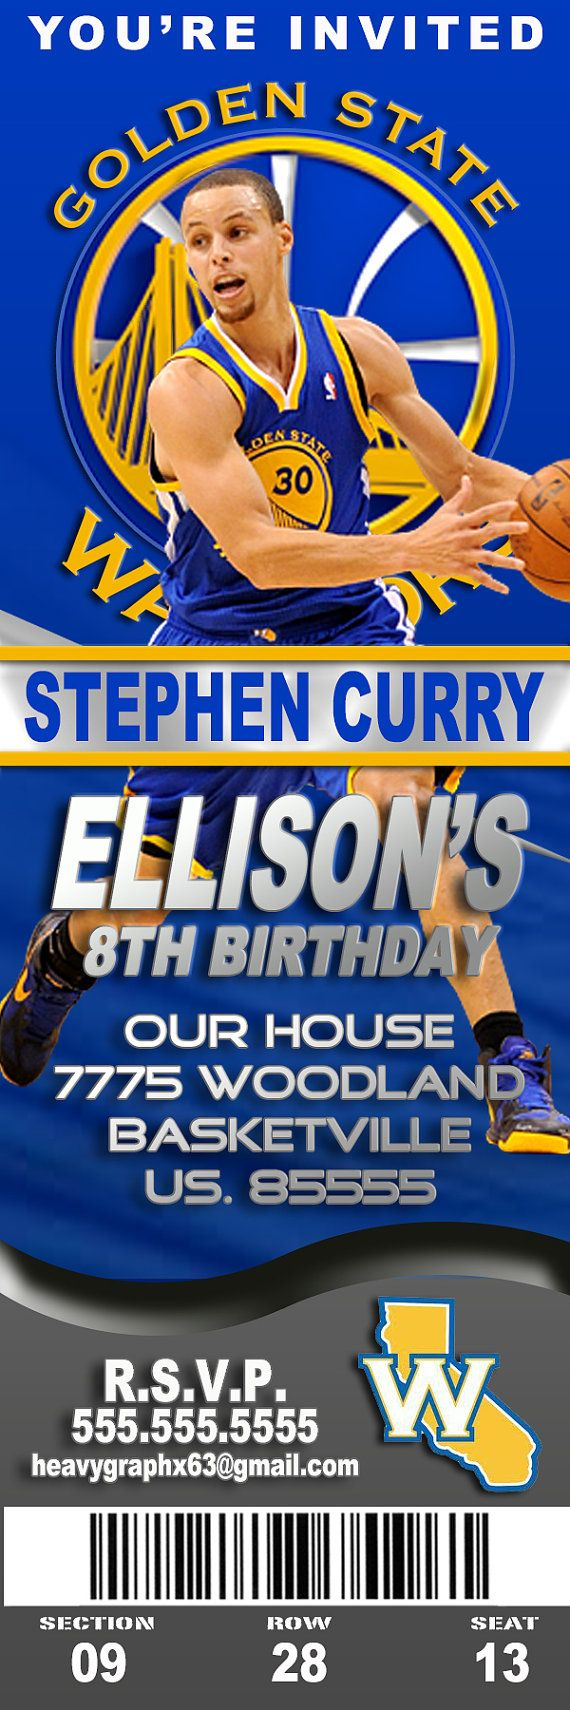 20 invites with envelopes Golden State Warriors Birthday party Invitation